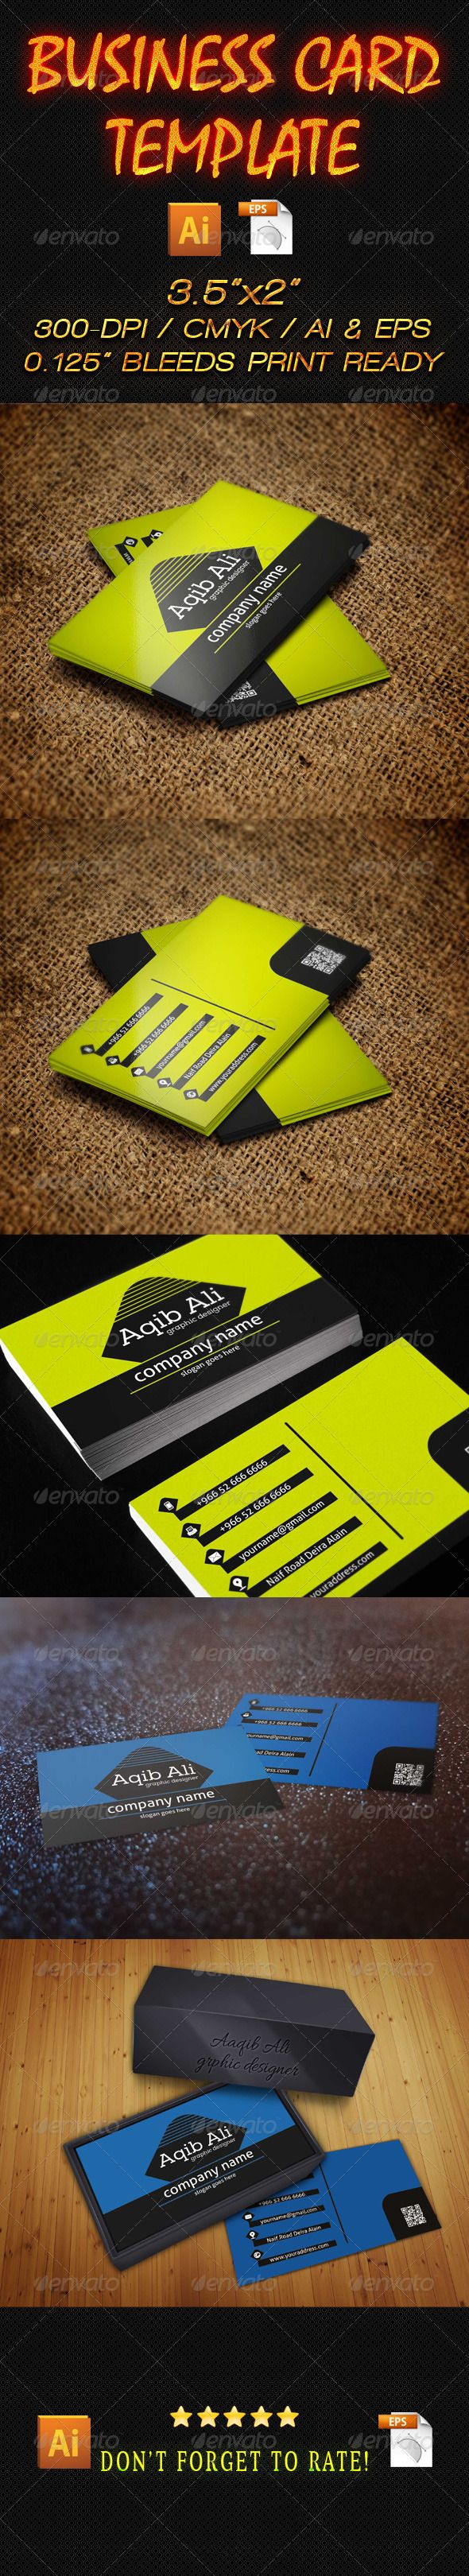 business card 16 business card design templates print templates qr ...